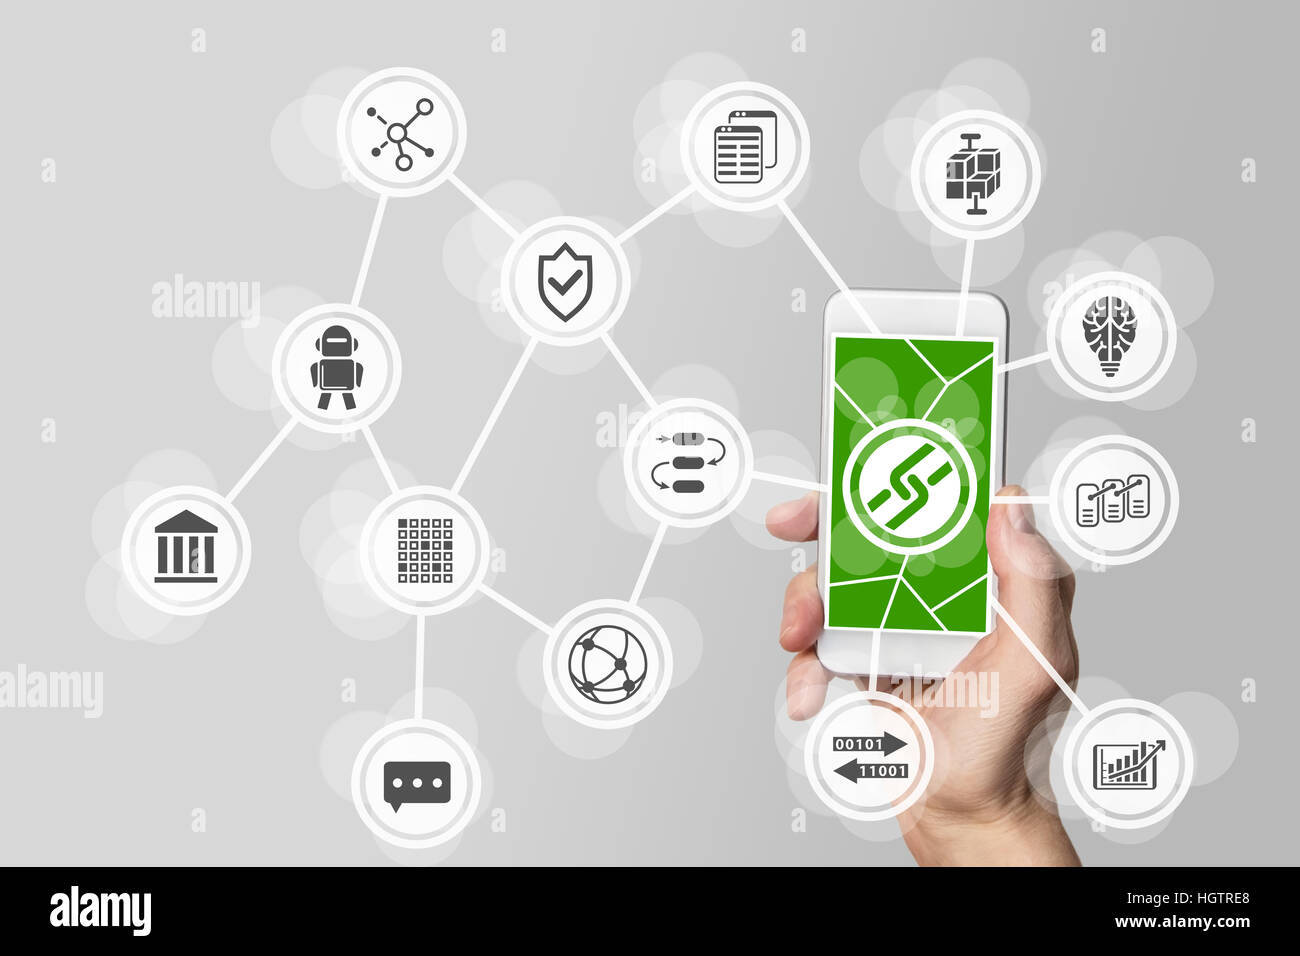 Blockchain and bitcoin concept with hand holding mobile phone - Stock Image